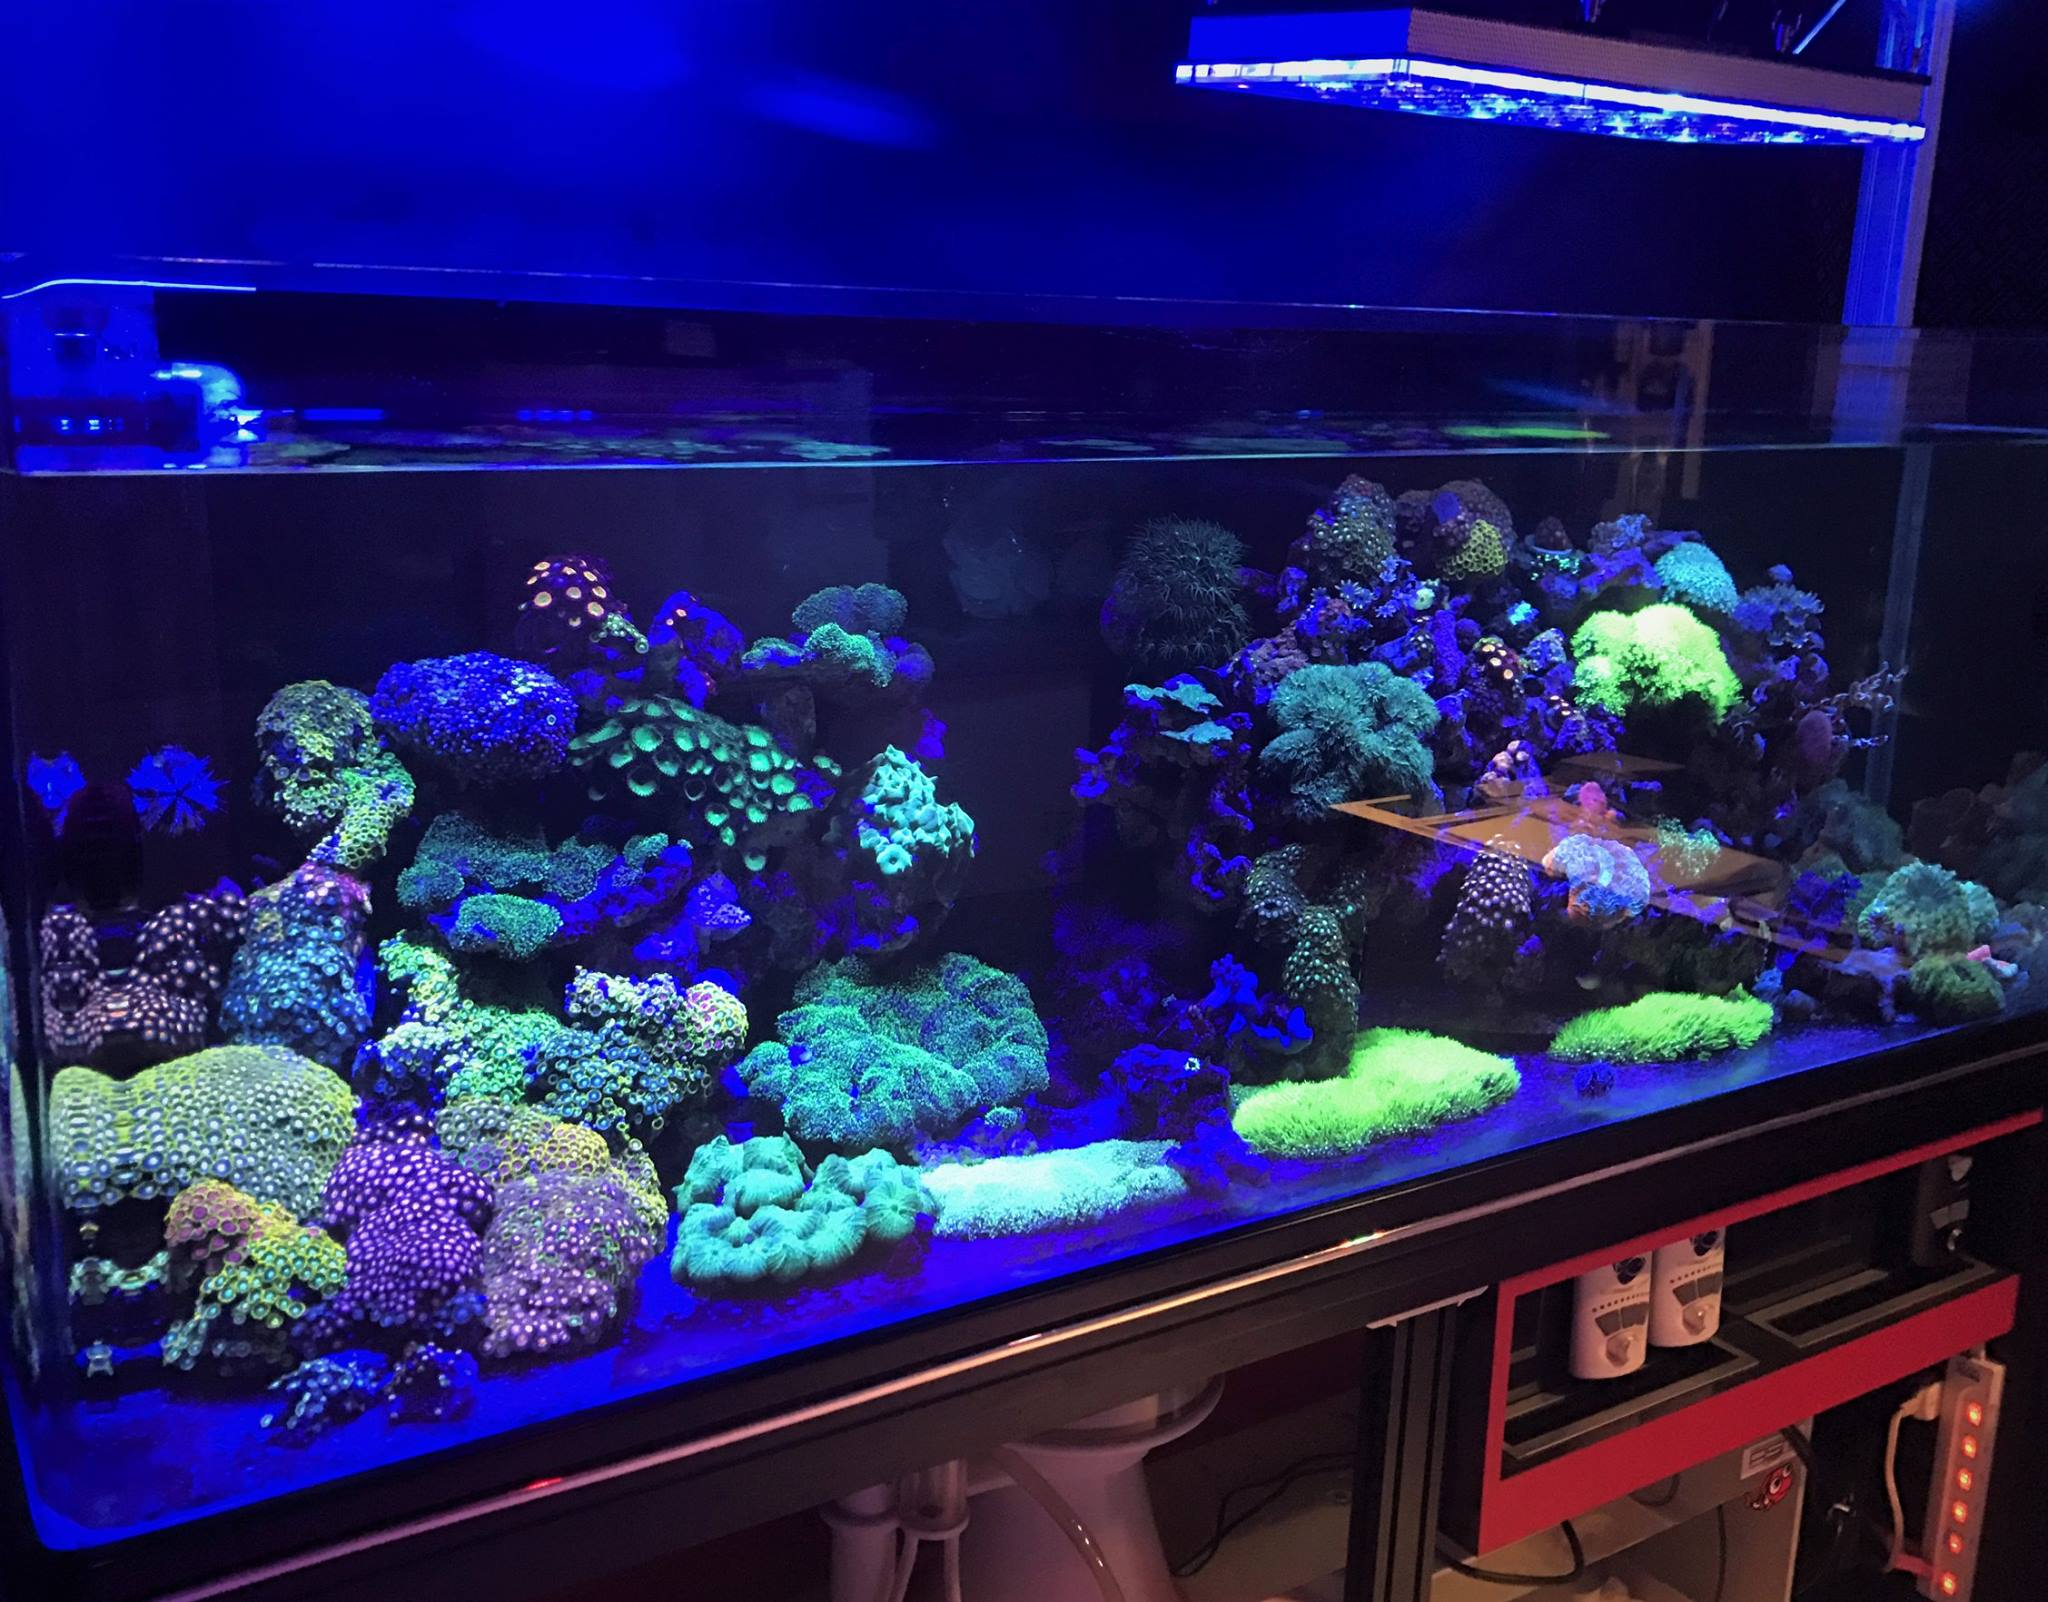 Led Aquarium Moonlight Night View Reef Aquarium Led